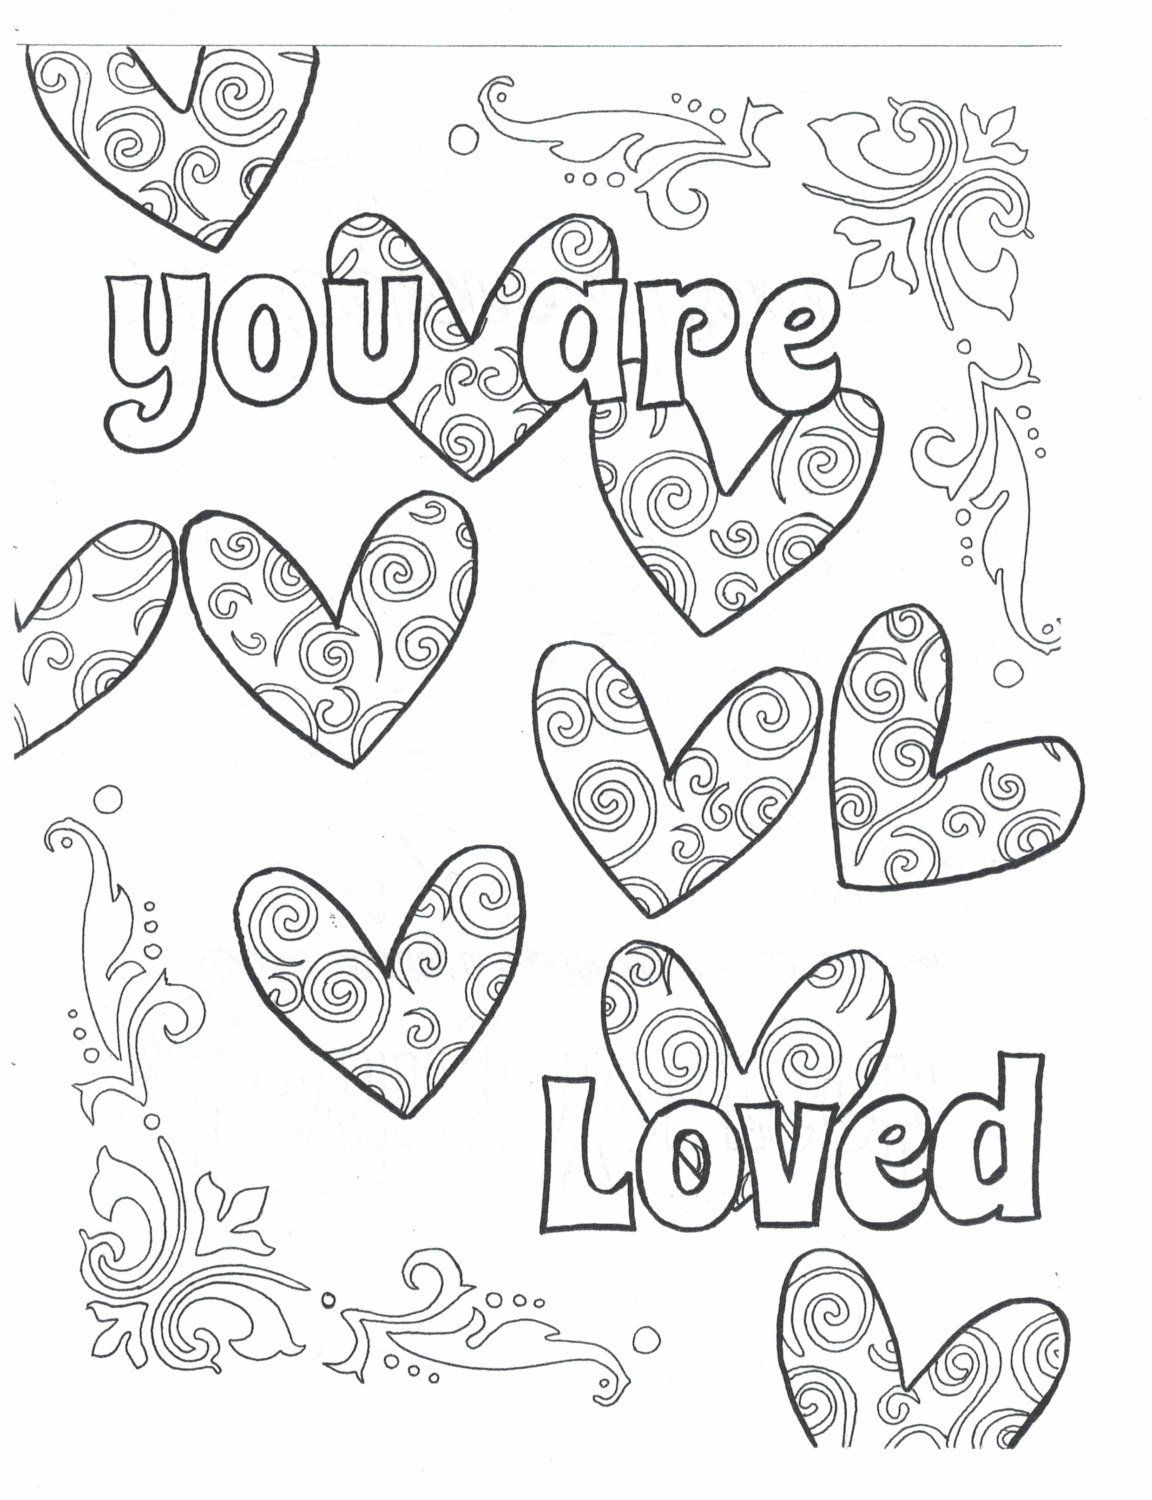 You Are Loved Coloring Page Etsy Love Coloring Pages Valentine Coloring Pages Quote Coloring Pages